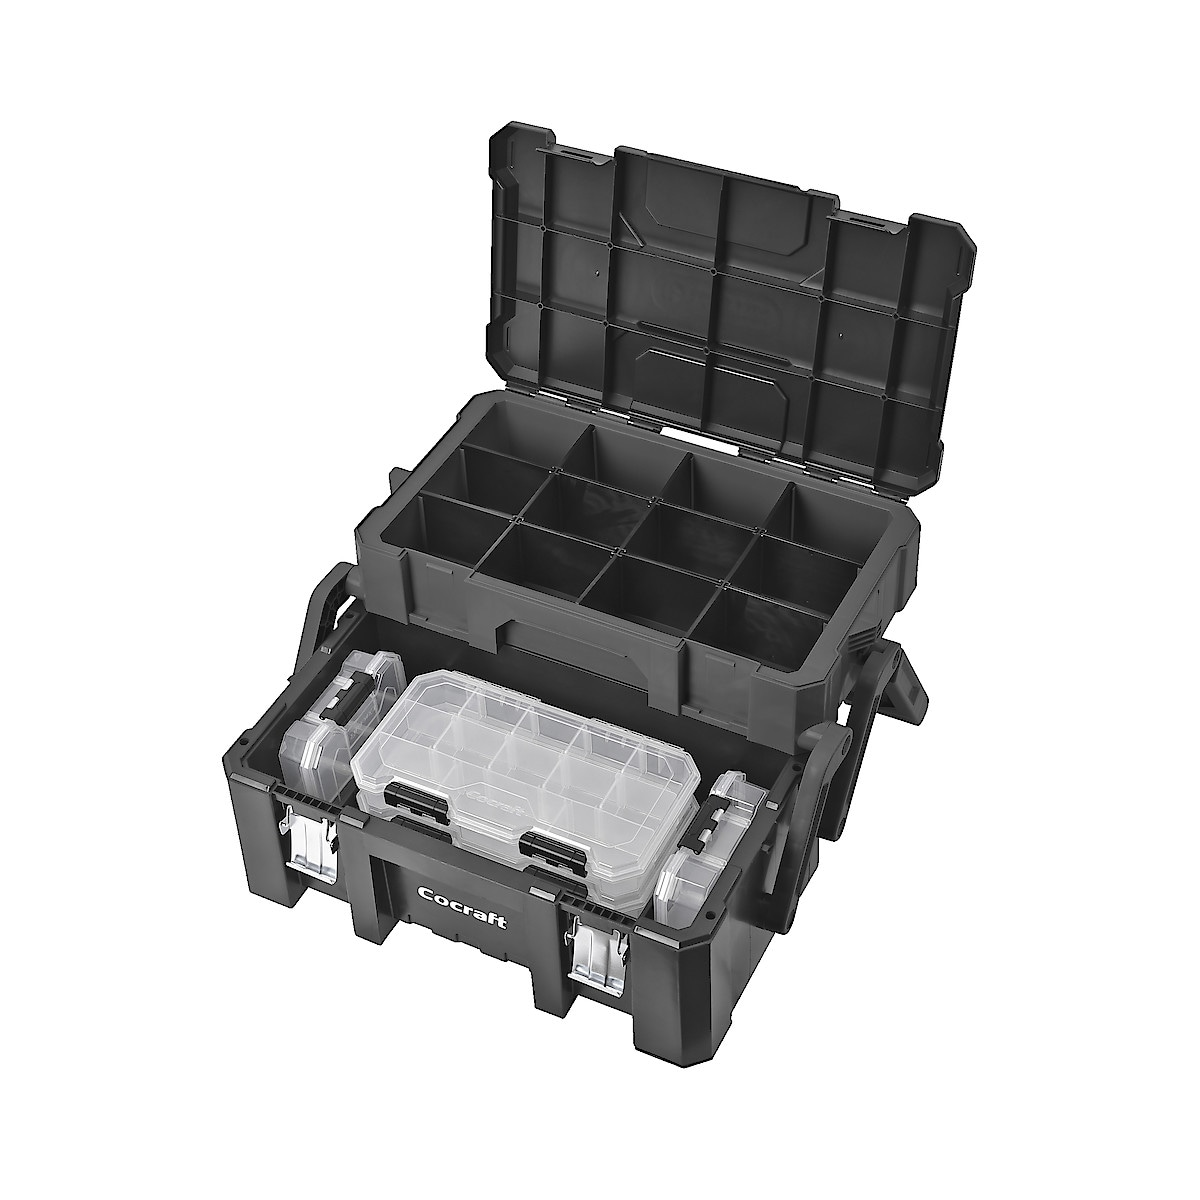 Cocraft FSS Cantilever Tool Box